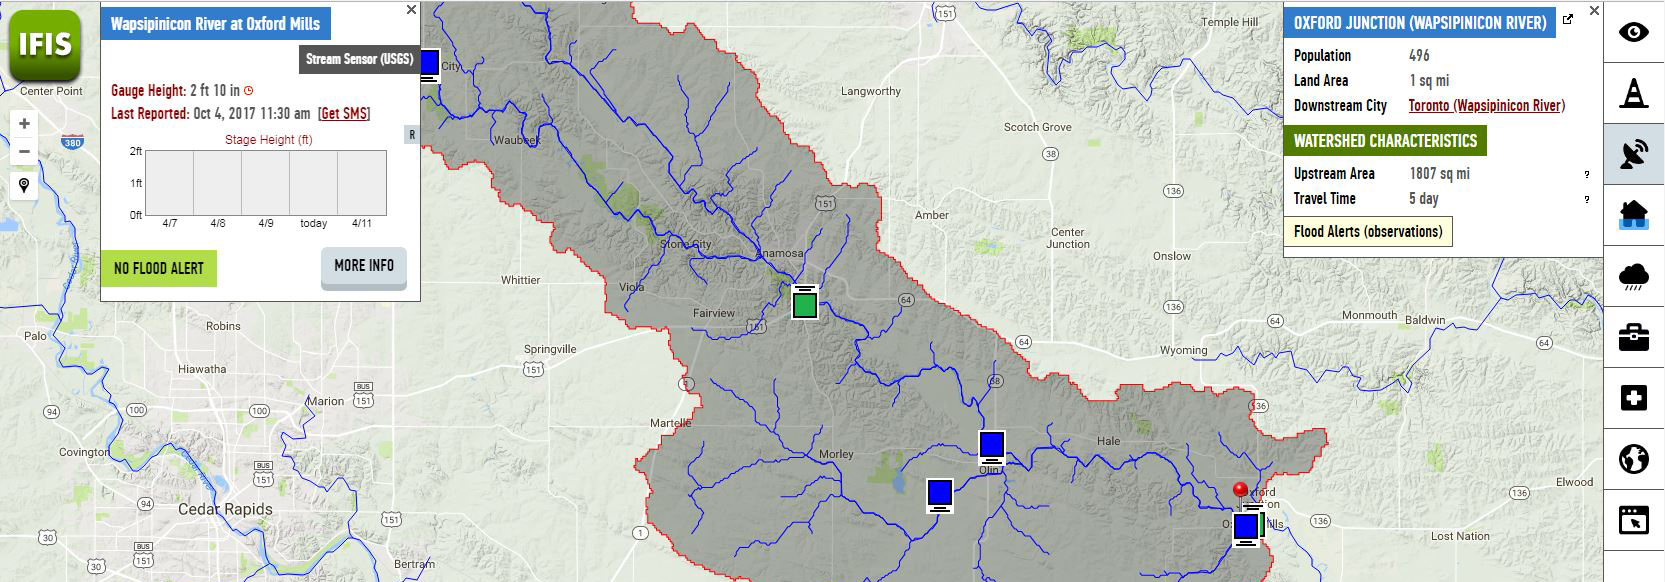 Screen shot of IFIS map showing the Wapsipinicon River watershed.